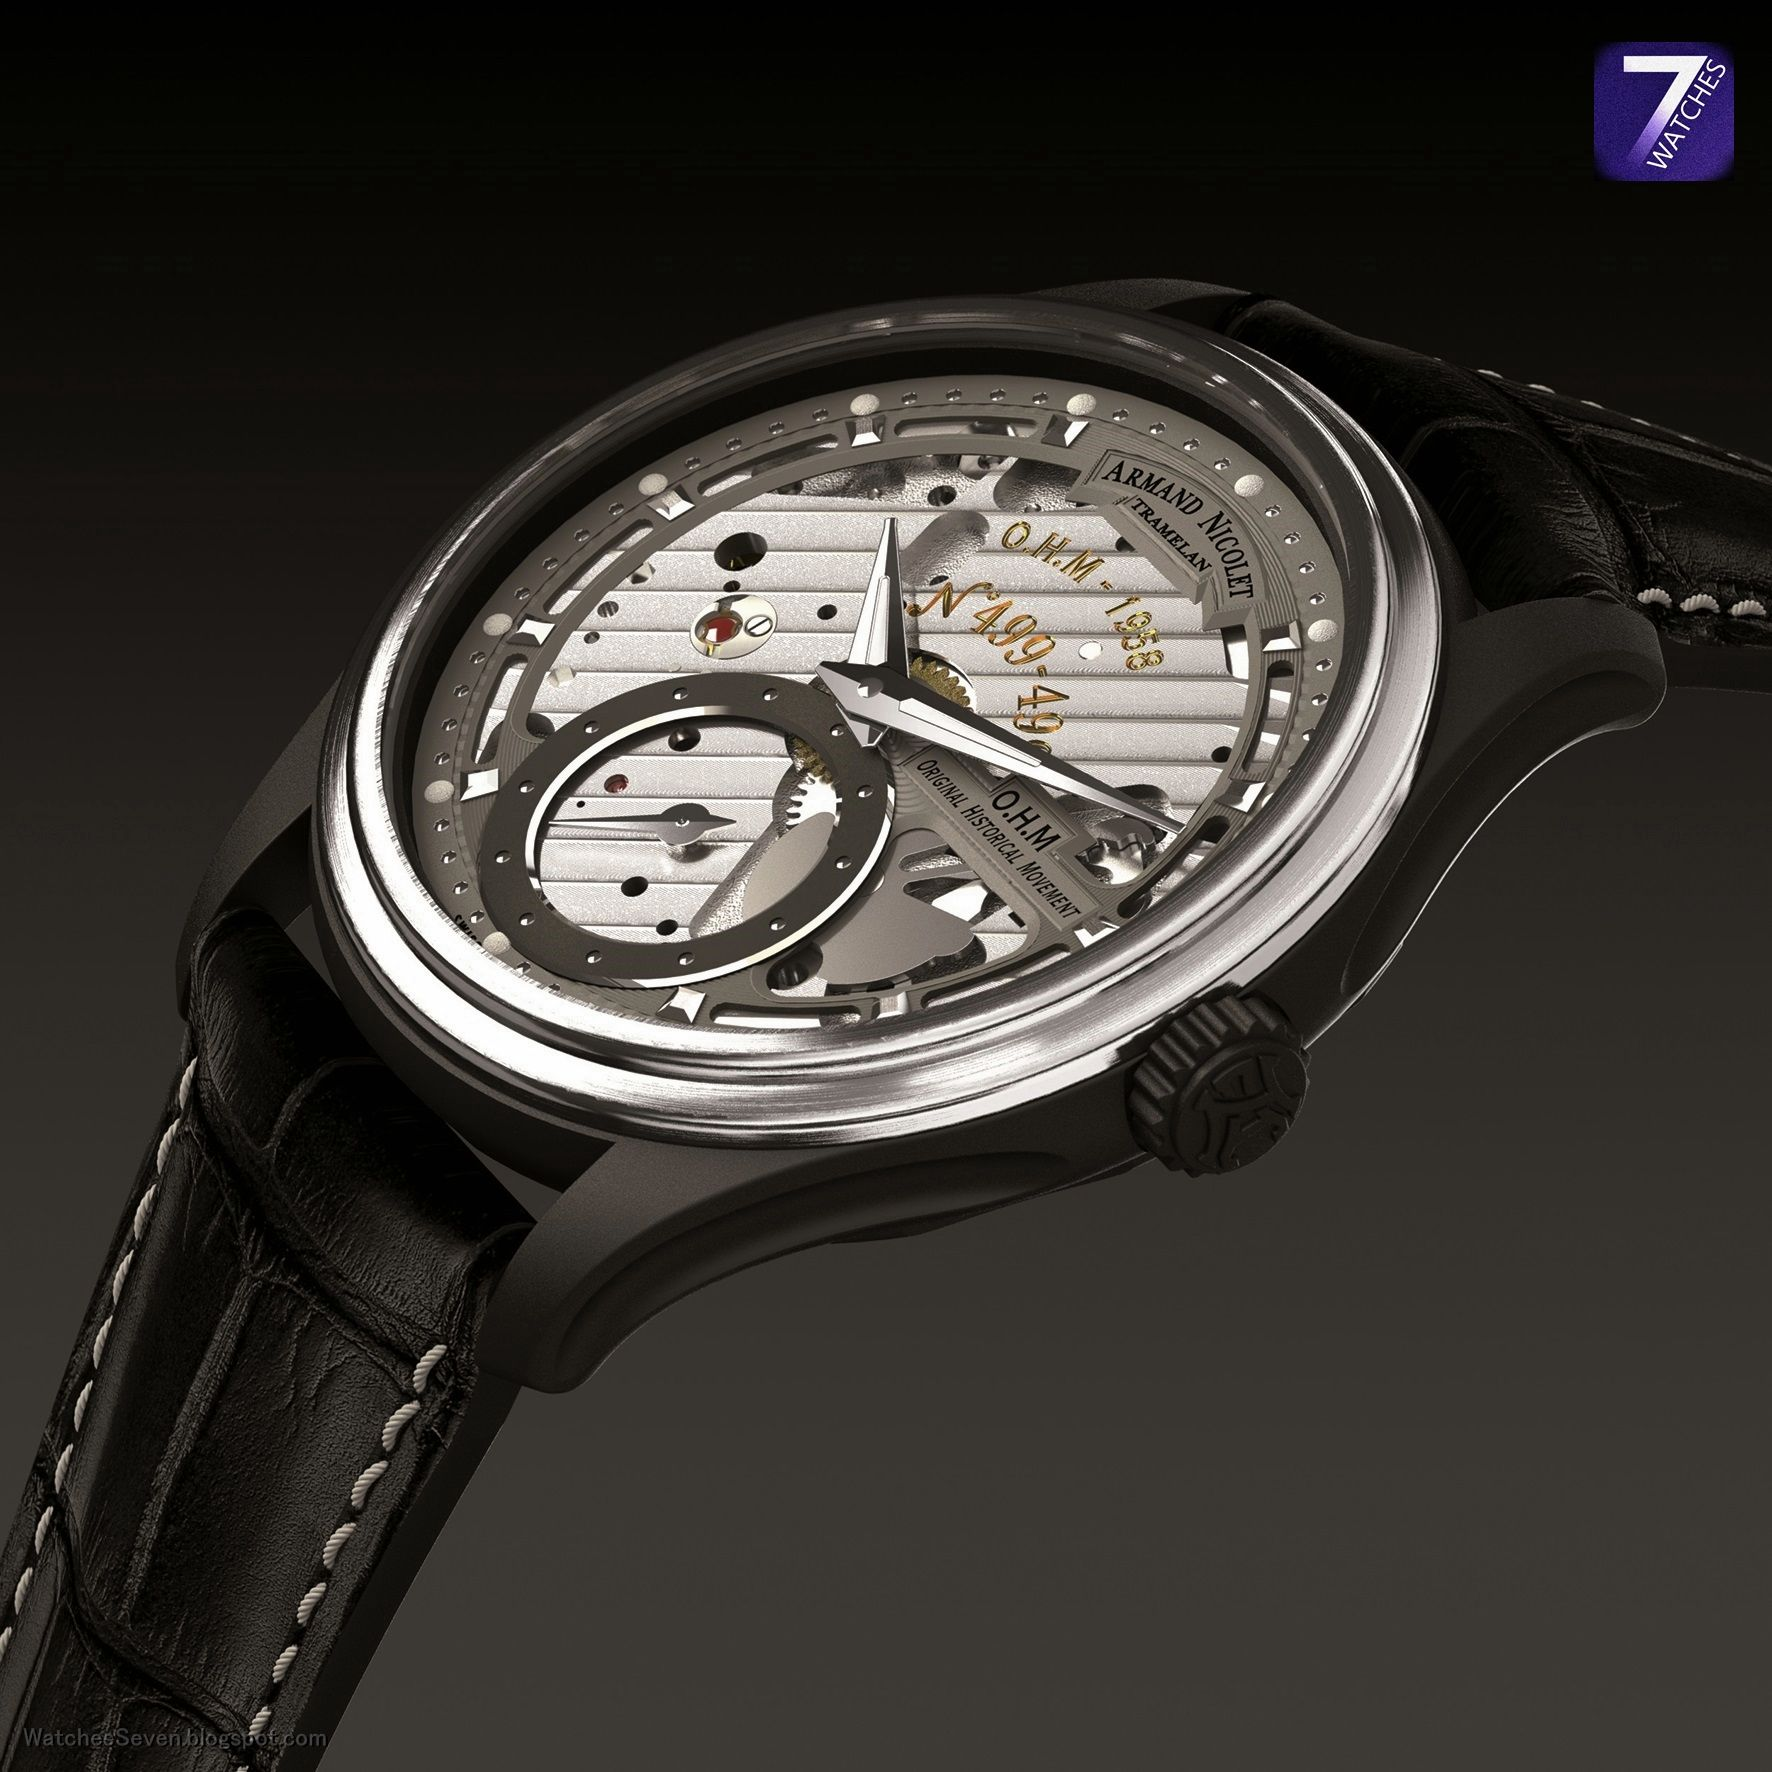 Watches 7 armand nicolet l14 o h m limited edition for Armand nicolet watches